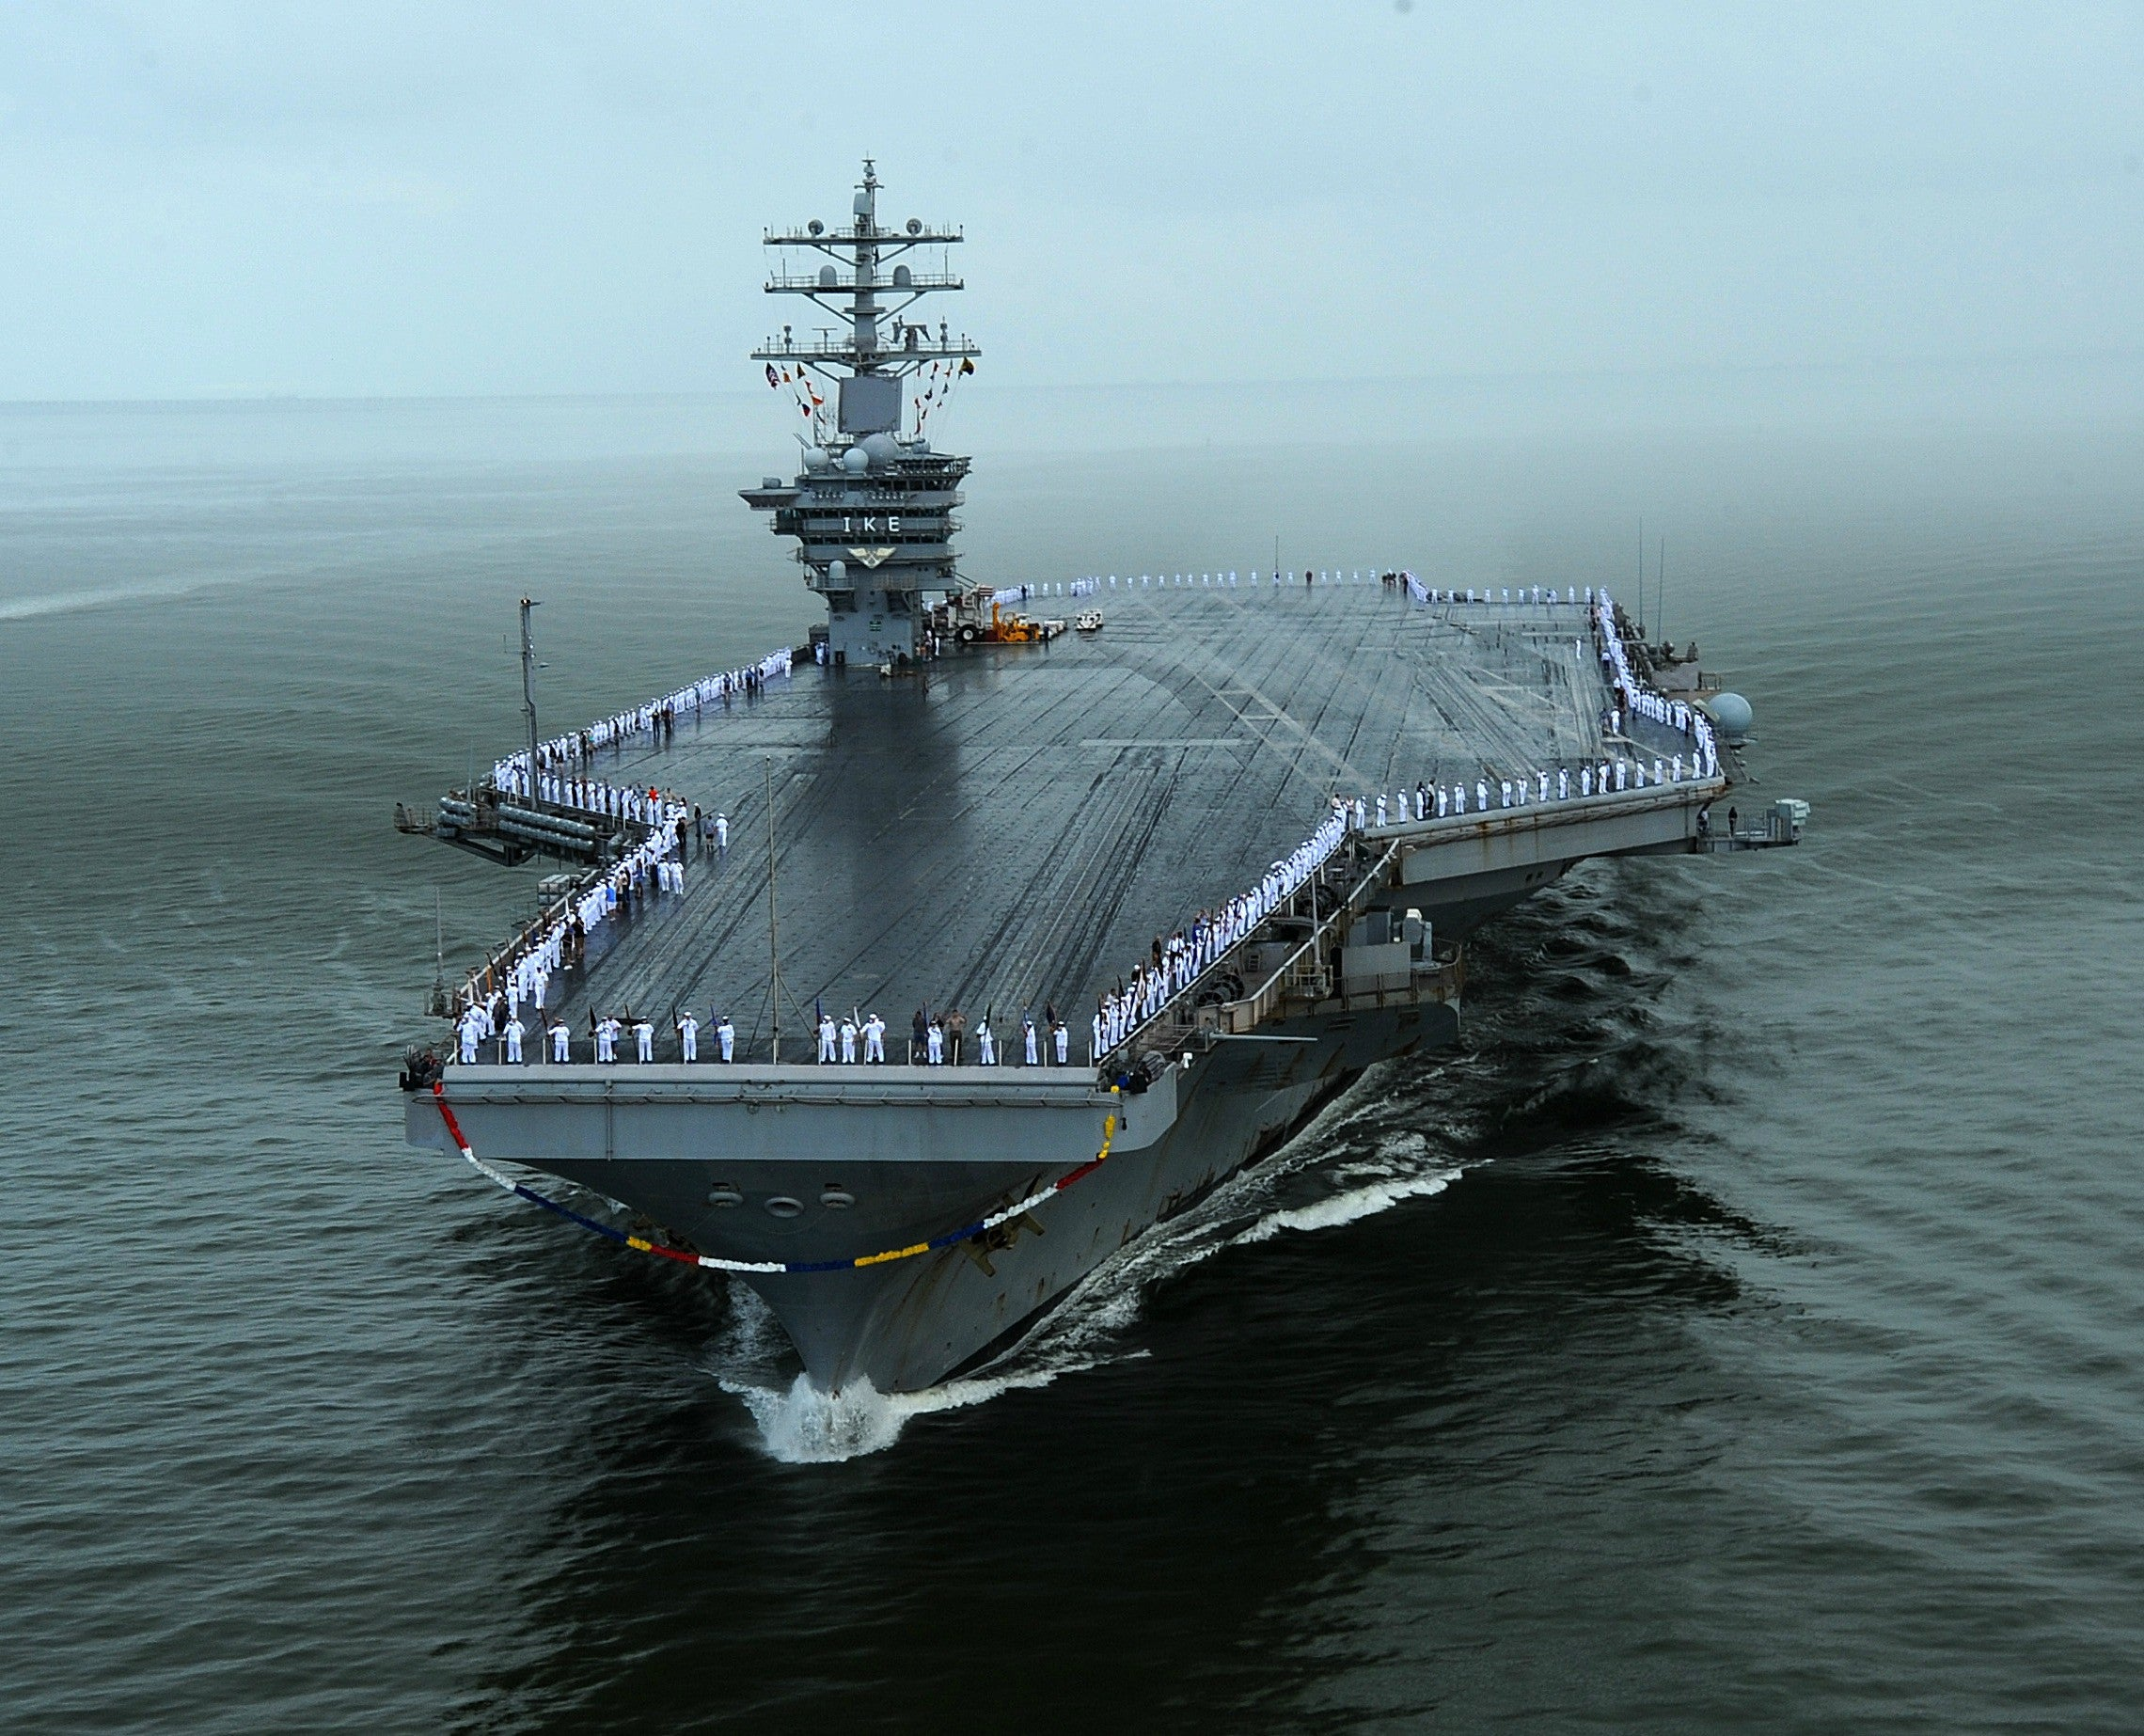 "USS Dwight D. Eisenhower CVN-69 Norfolk, VA July 3, 2013 - 8 x 10"" Photograph"